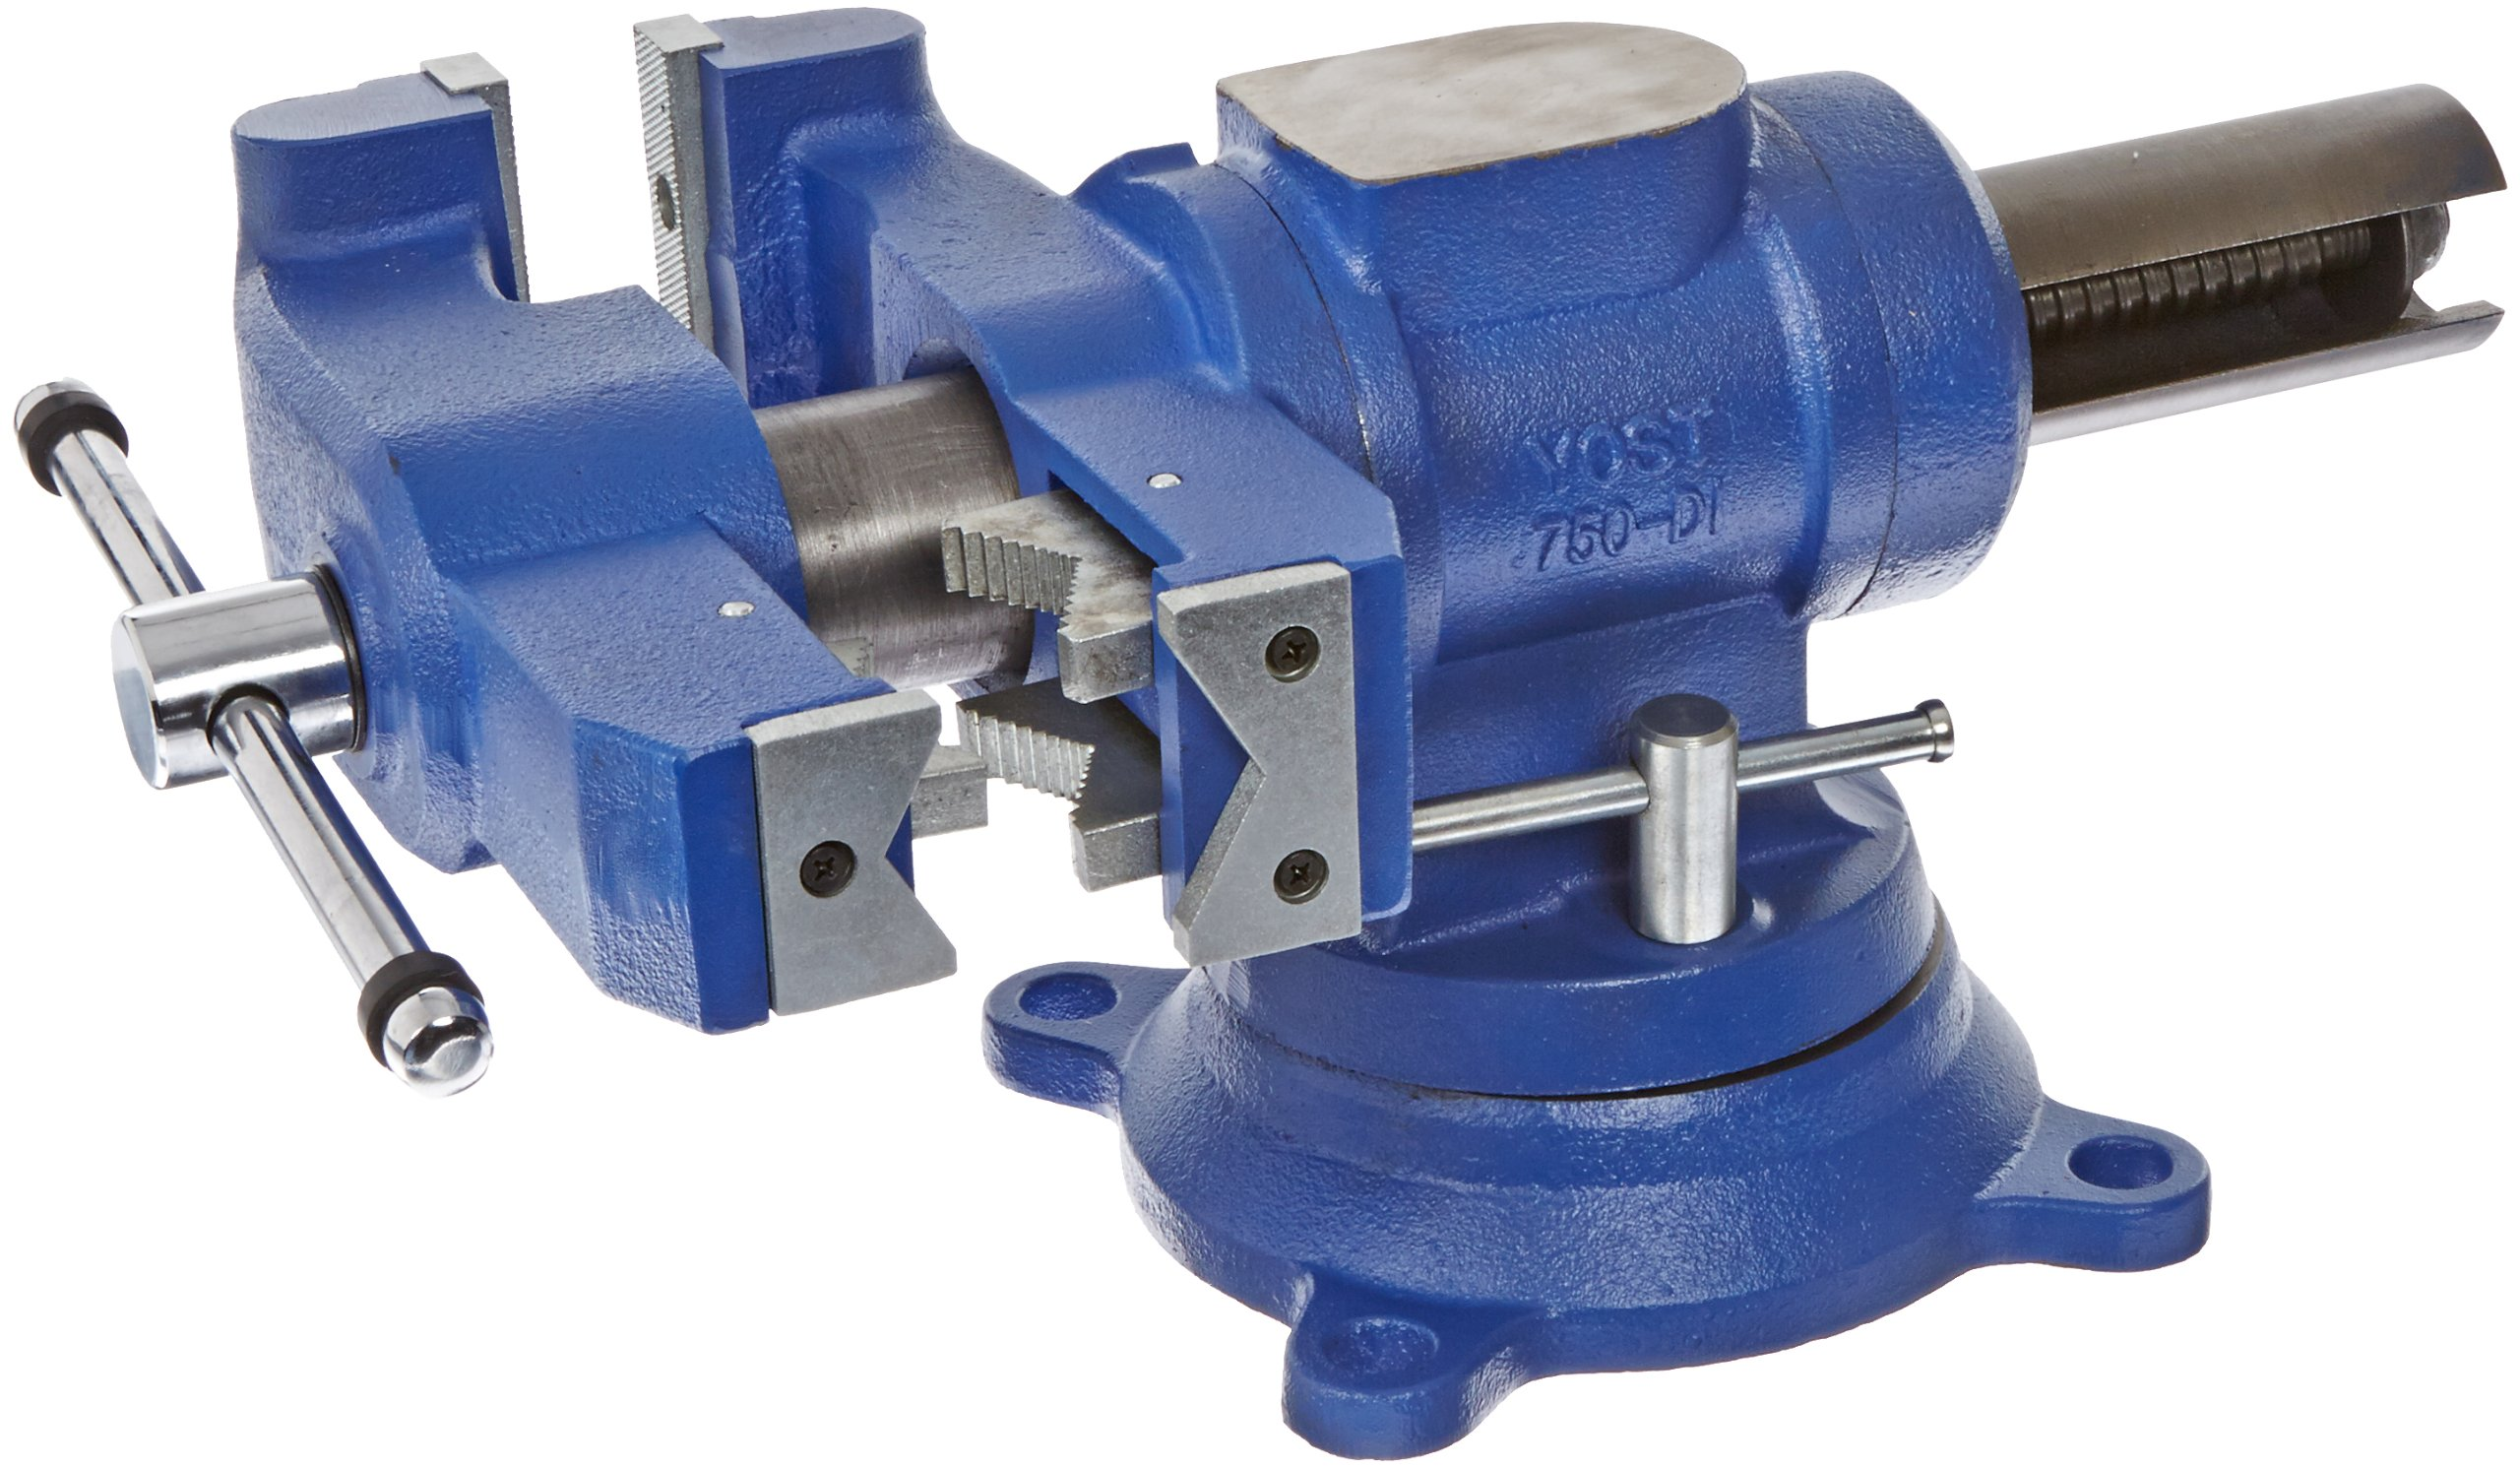 Yost Vises 750-DI 5'' Heavy-Duty Multi-Jaw Rotating Combination Pipe and Bench Vise with 360-Degree Swivel Base and Head